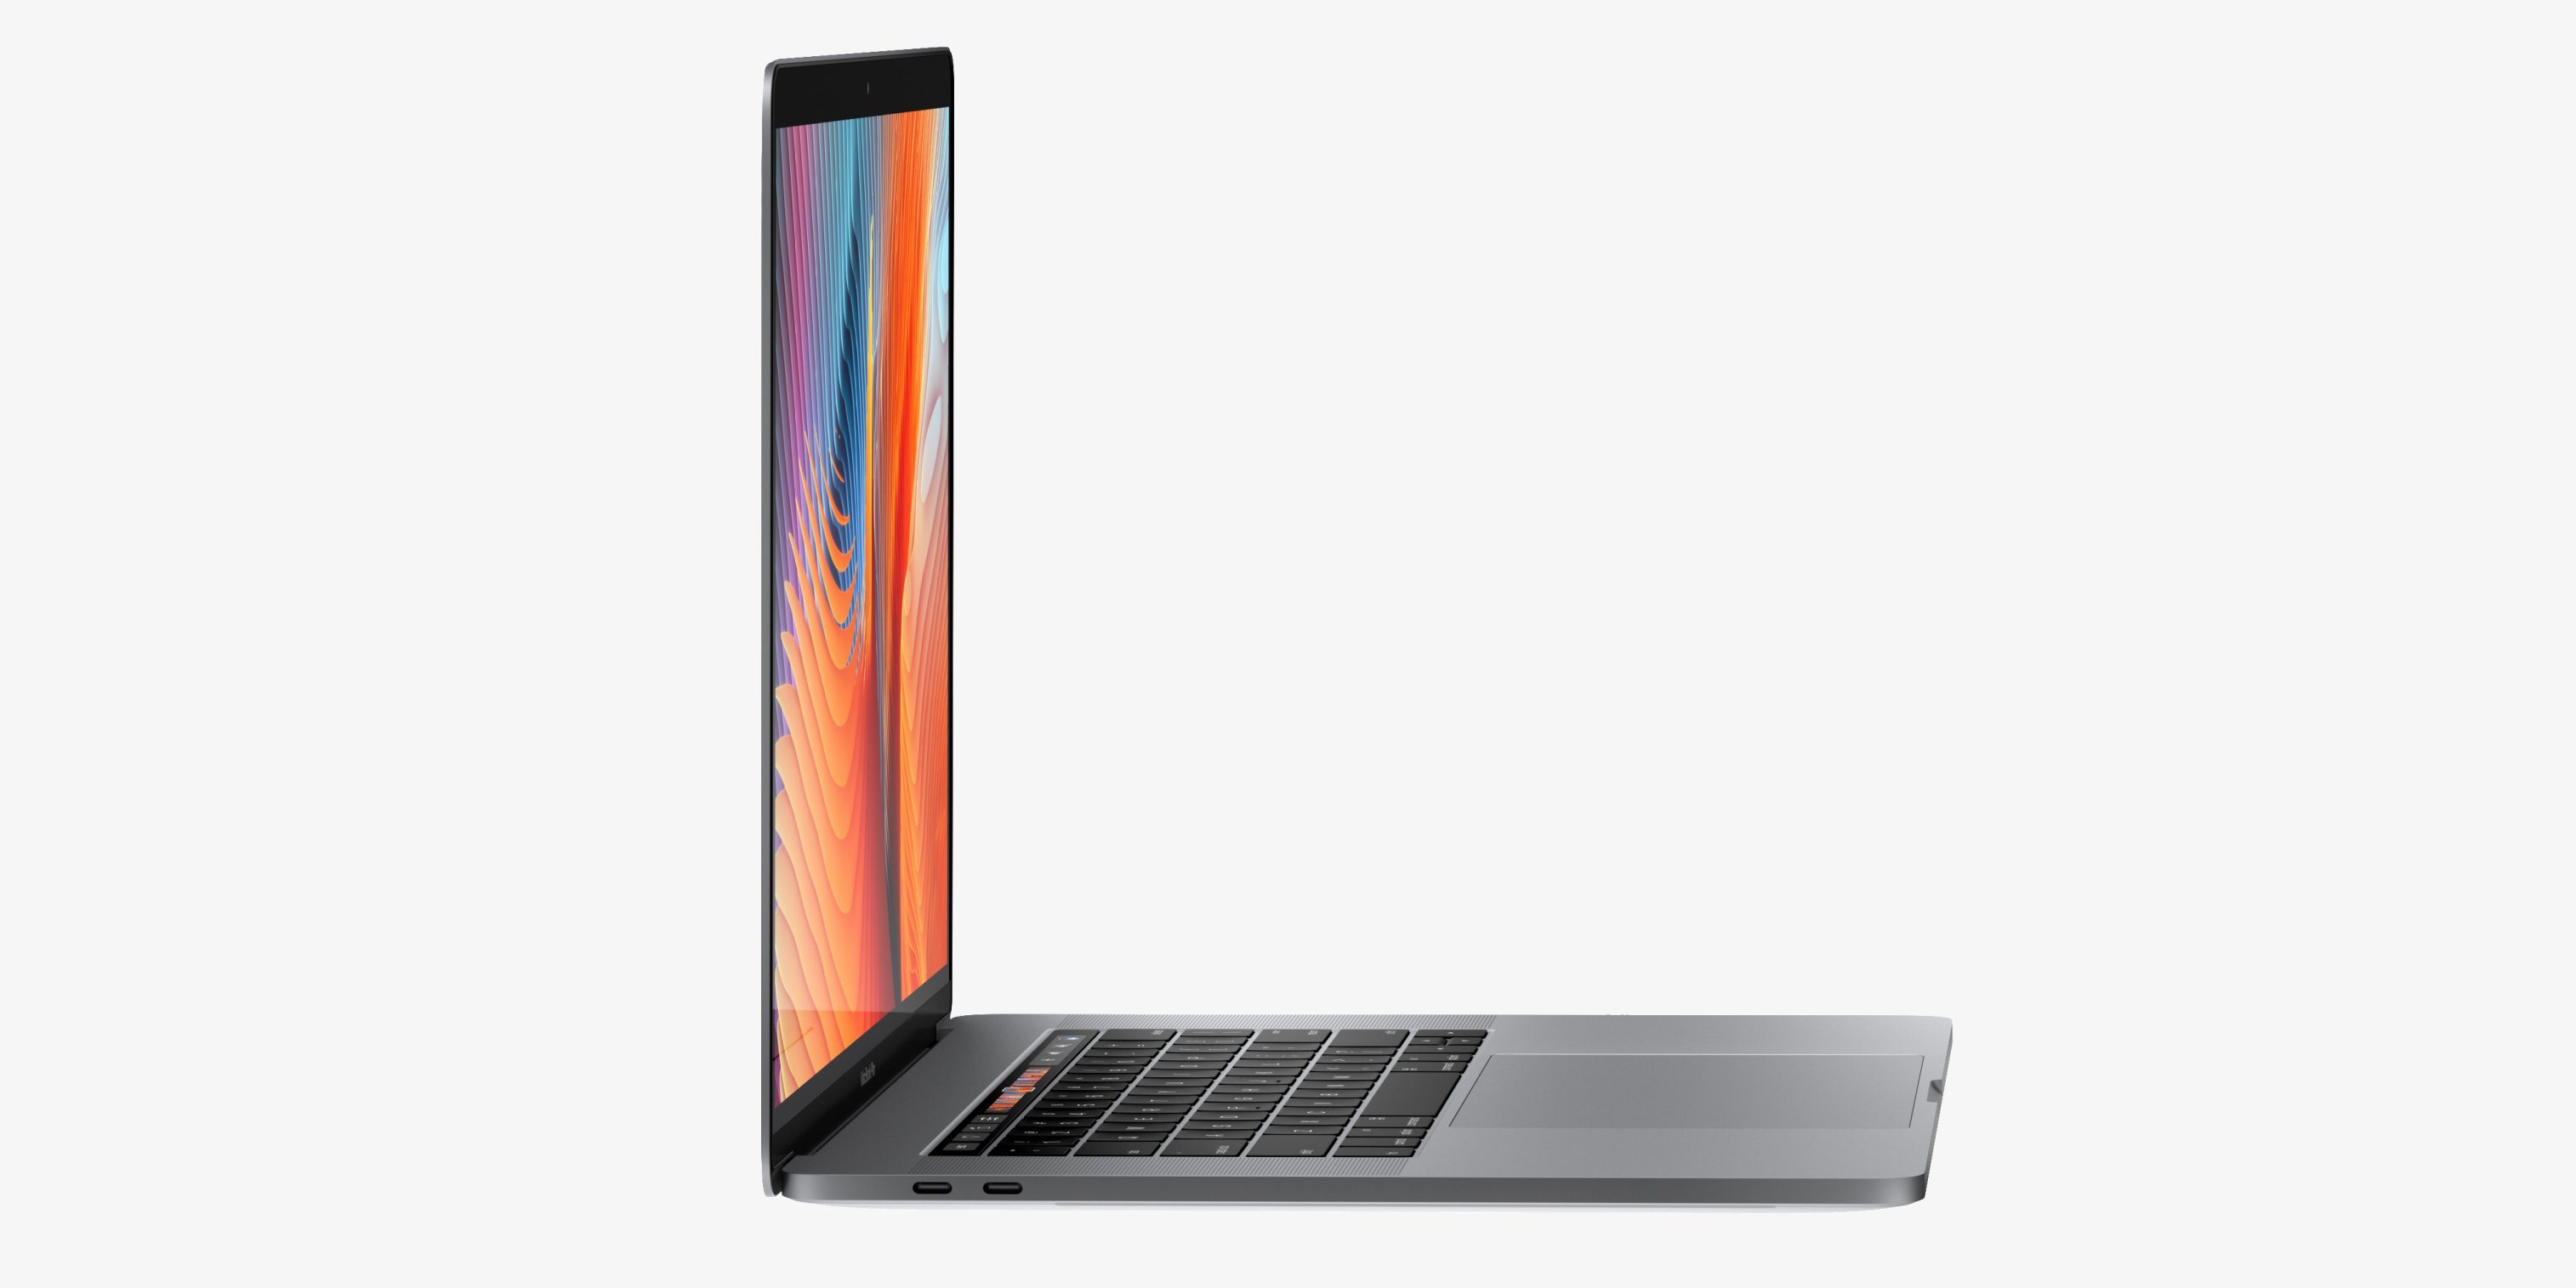 B&H knocks $500 off Apple's 2016 15-inch MacBook Pro w/ Touch Bar (Tax NY/NJ only)